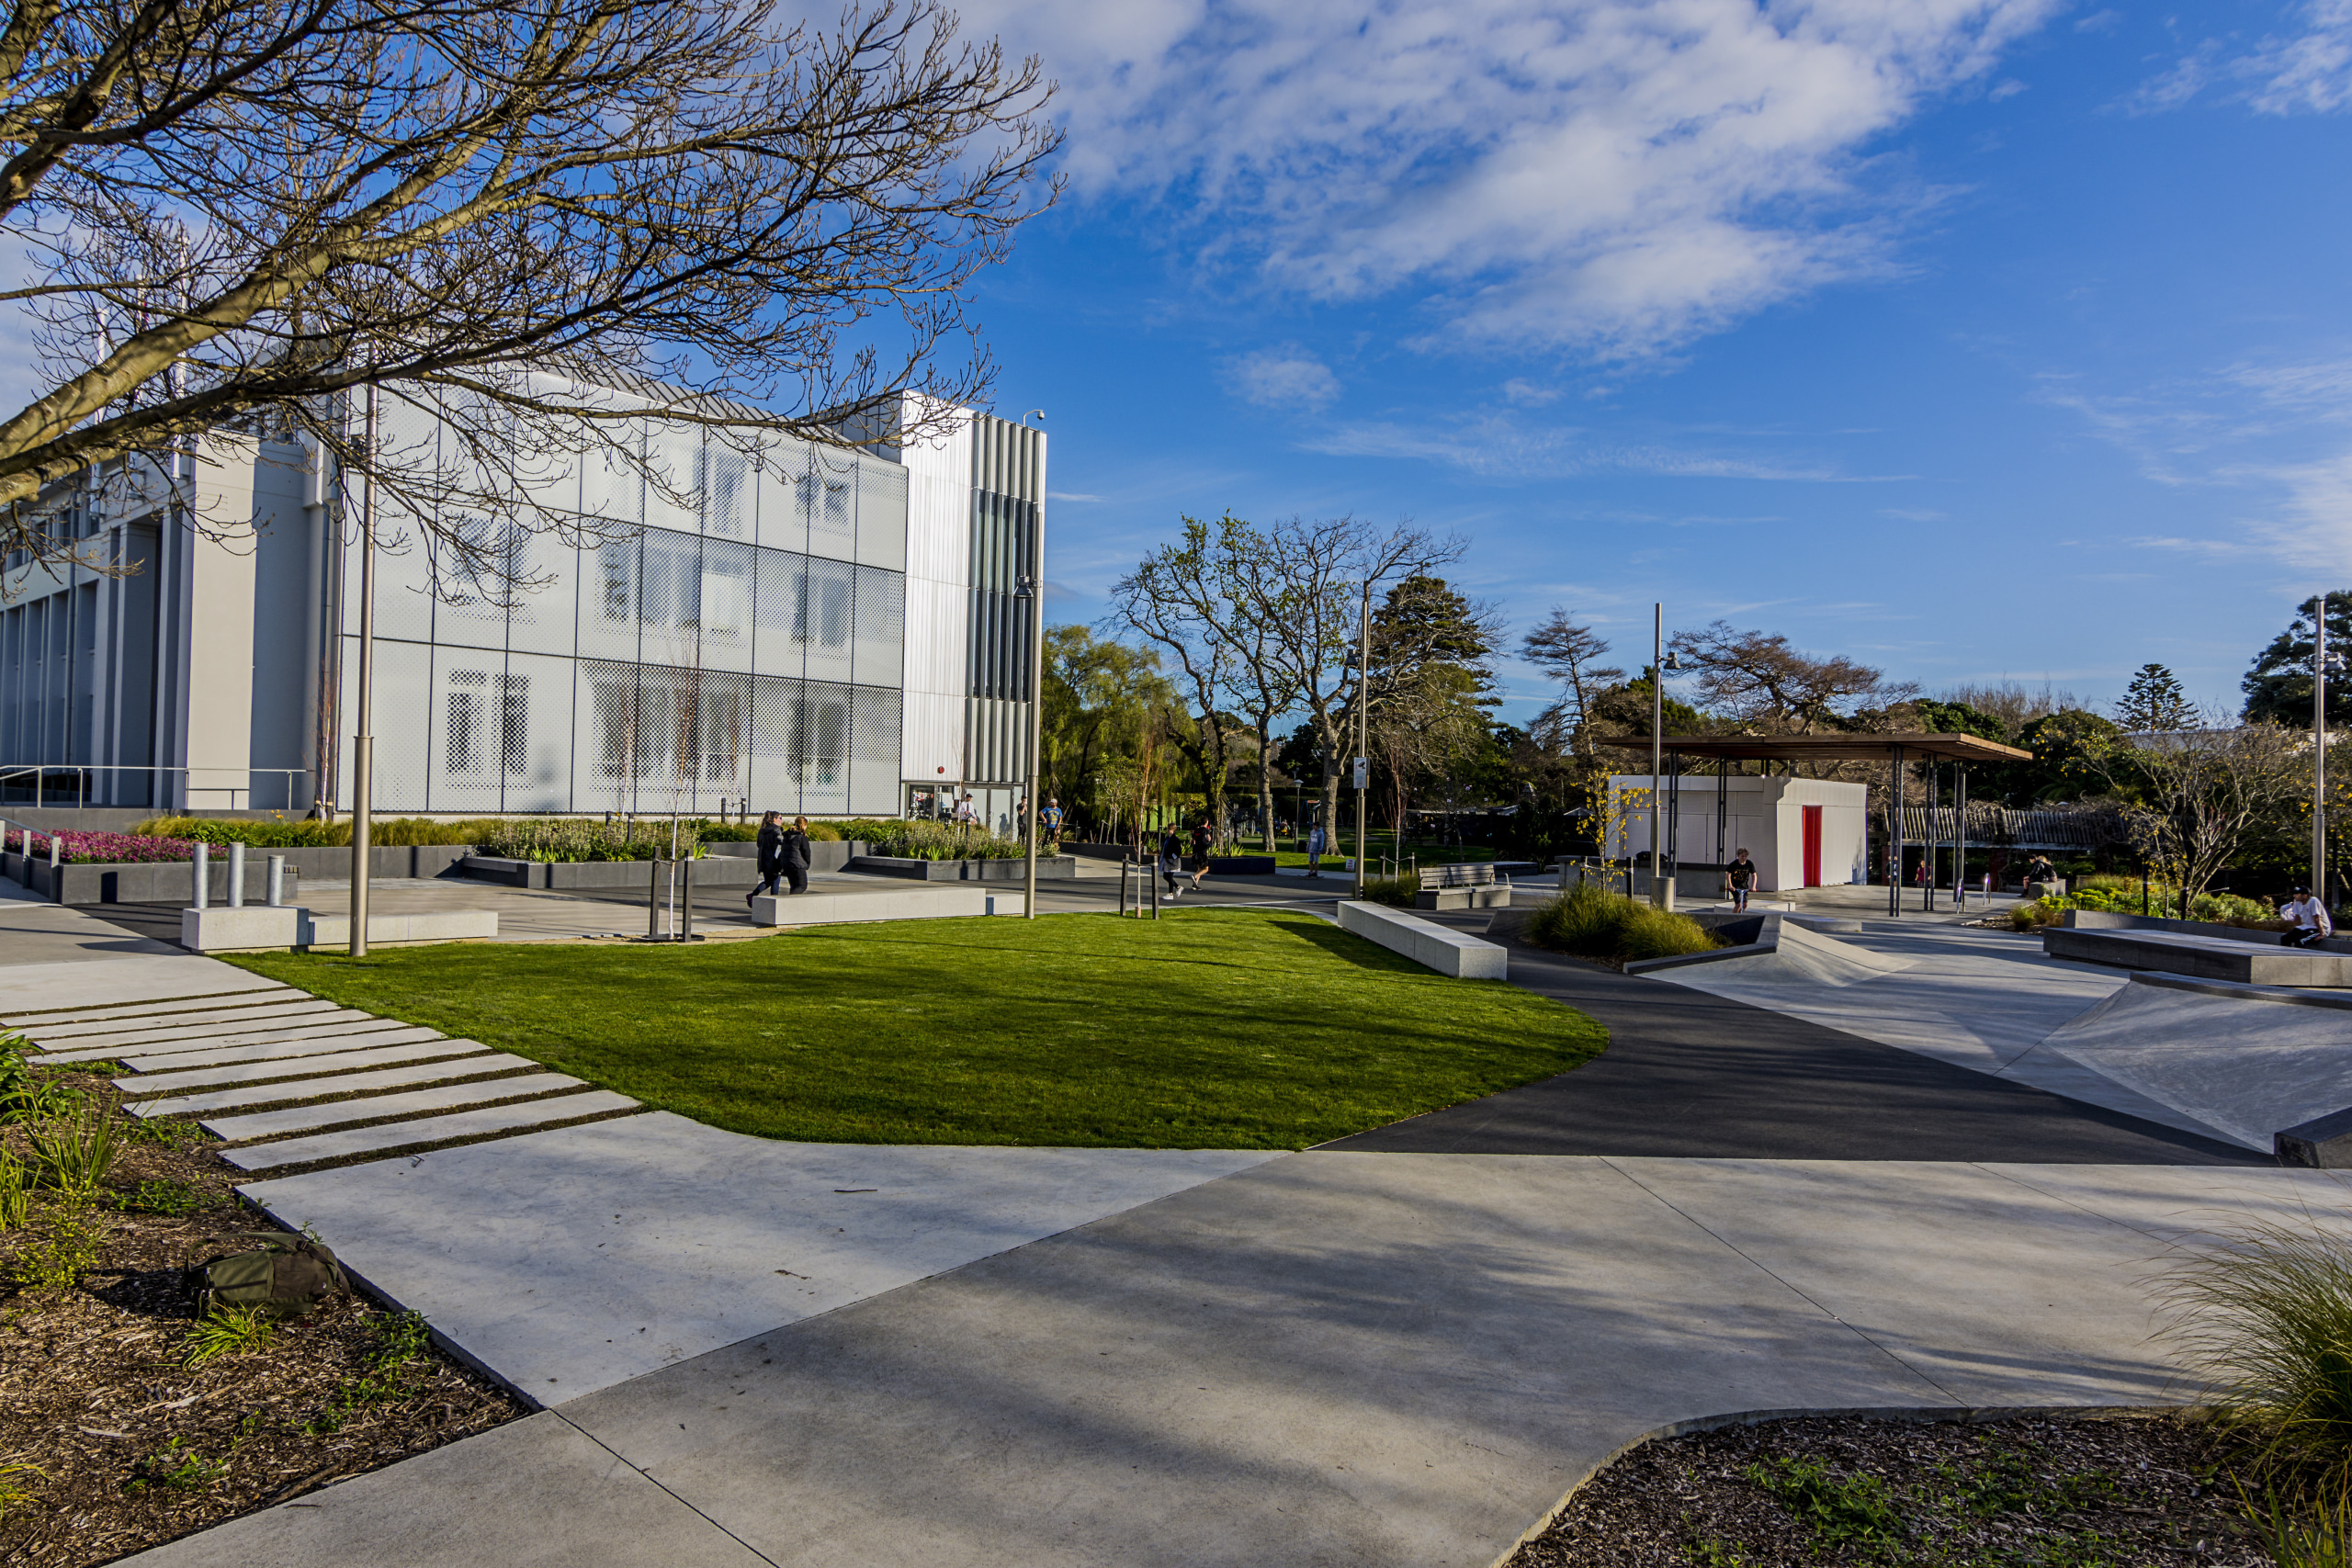 Both the Hutt Councils administration building and its architecture, building, campus, city, condominium, corporate headquarters, daytime, estate, facade, grass, headquarters, home, house, landscape, mixed use, neighbourhood, plant, plaza, real estate, residential area, sky, suburb, tree, urban design, gray, teal